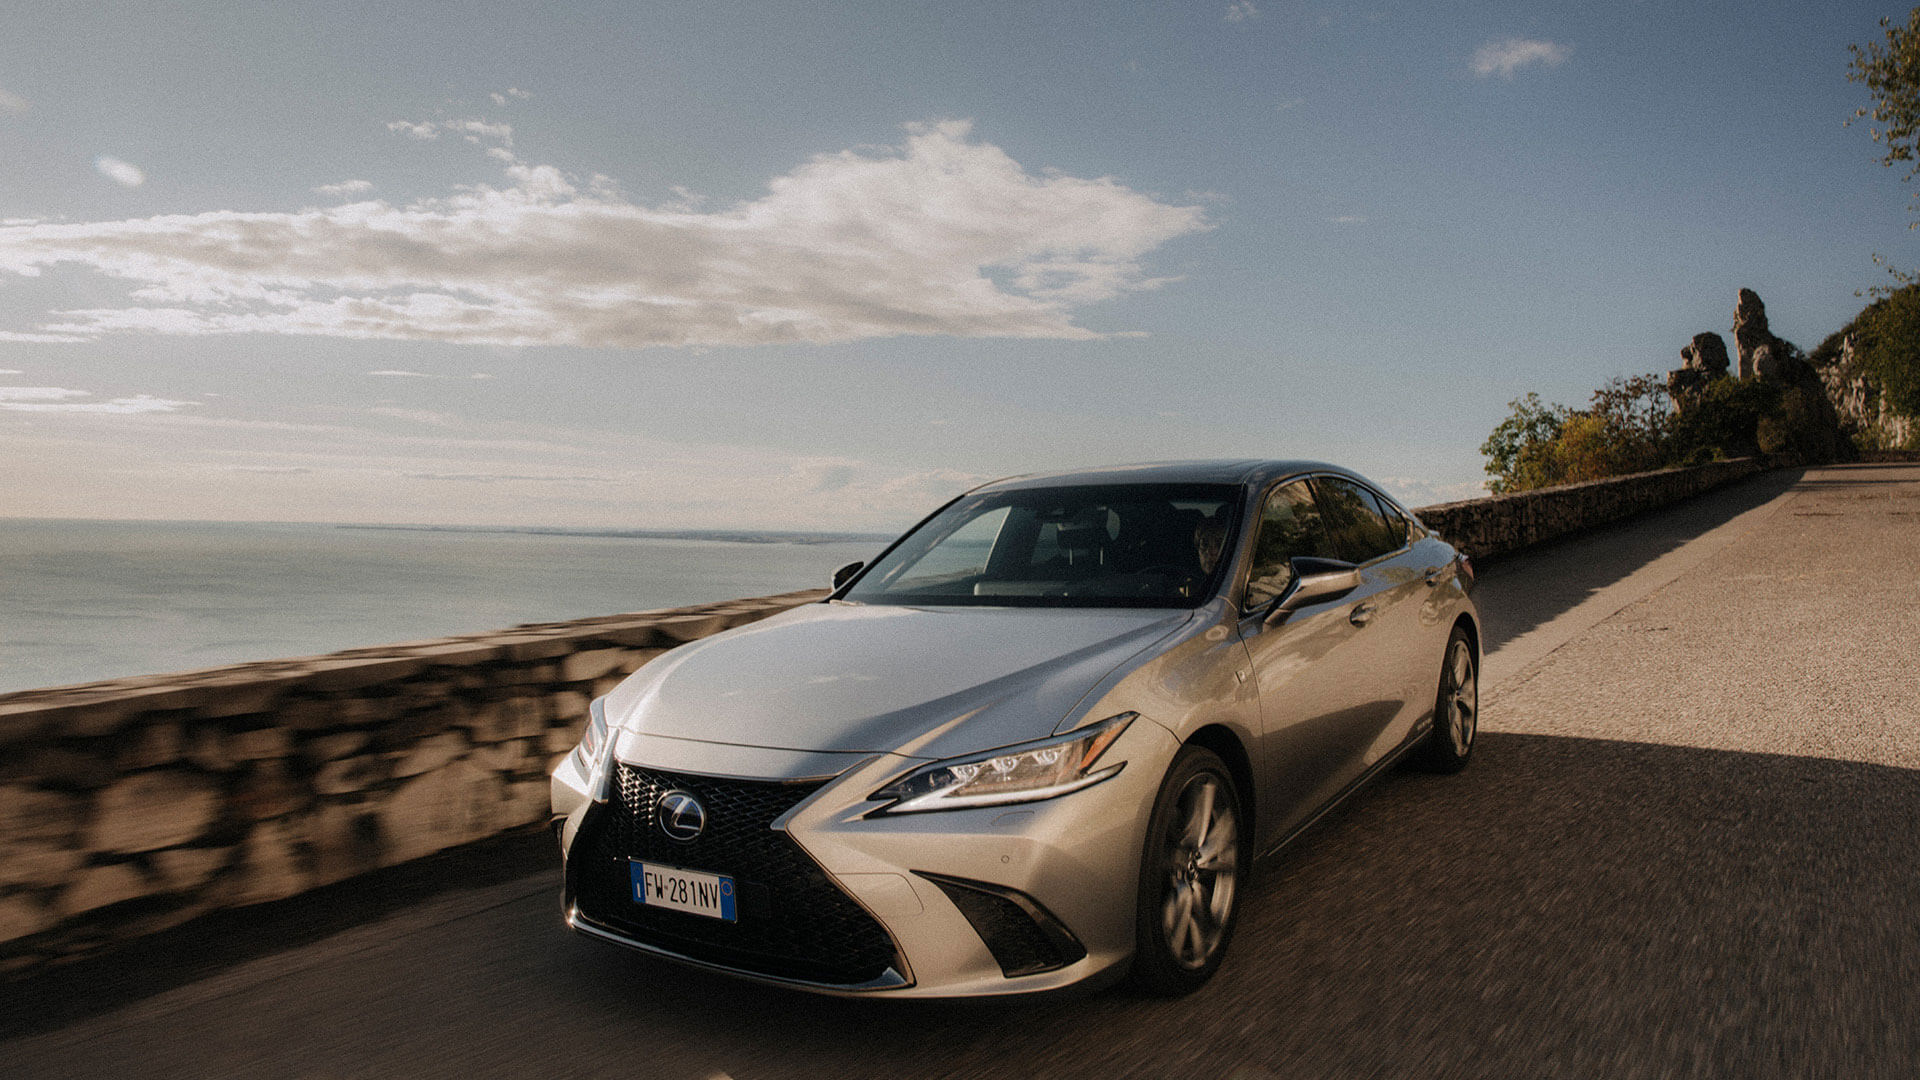 2020 lexus journeys in taste episode 8 gallery 04